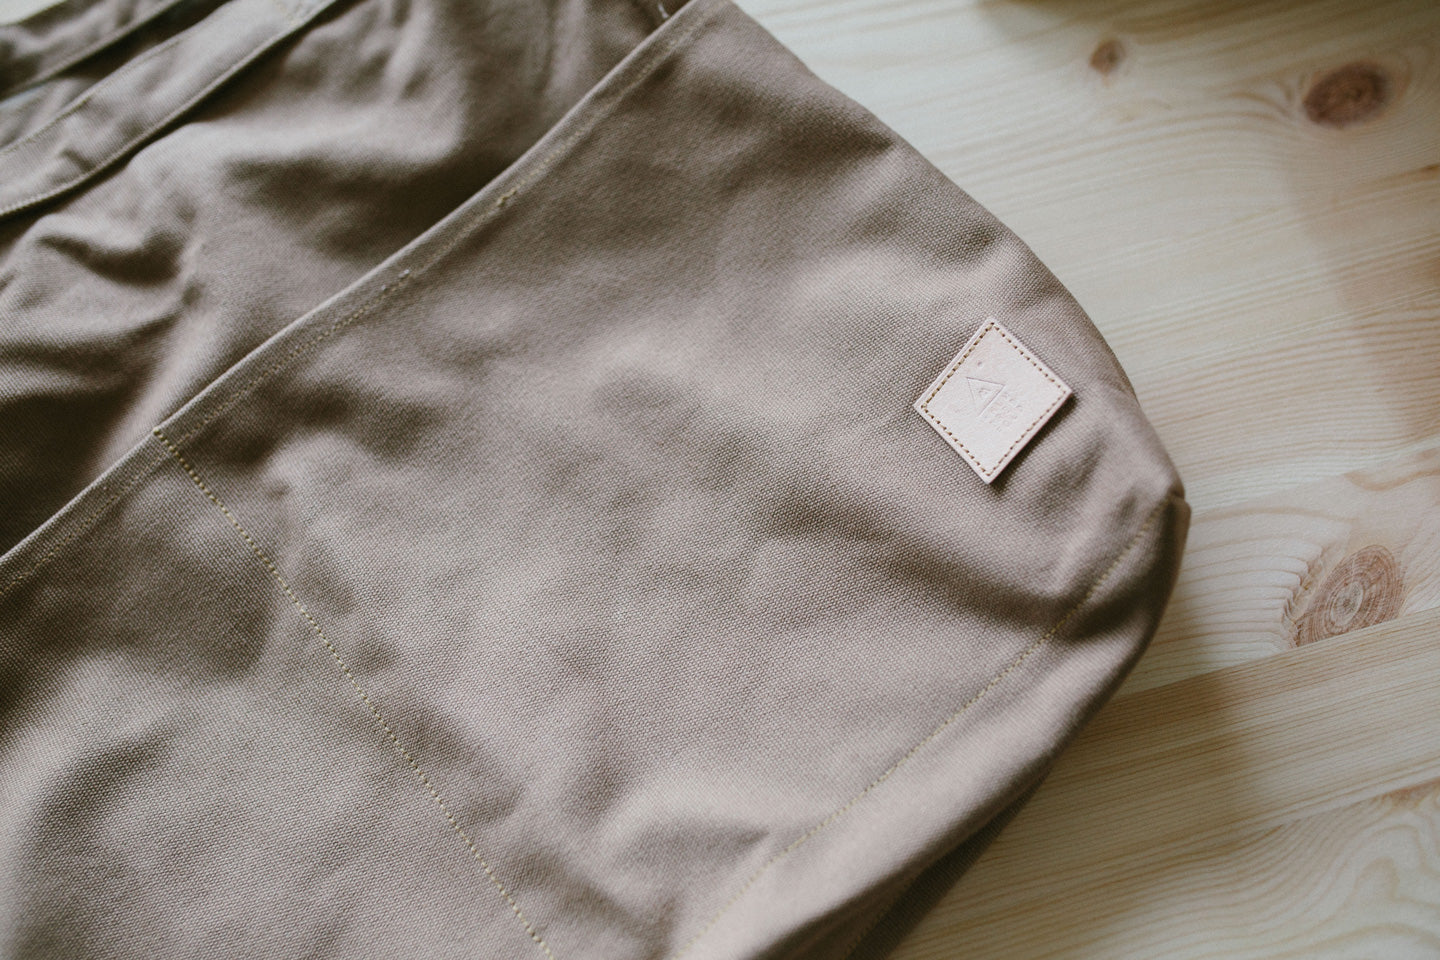 xL Sling Bag (North Creek Brown)